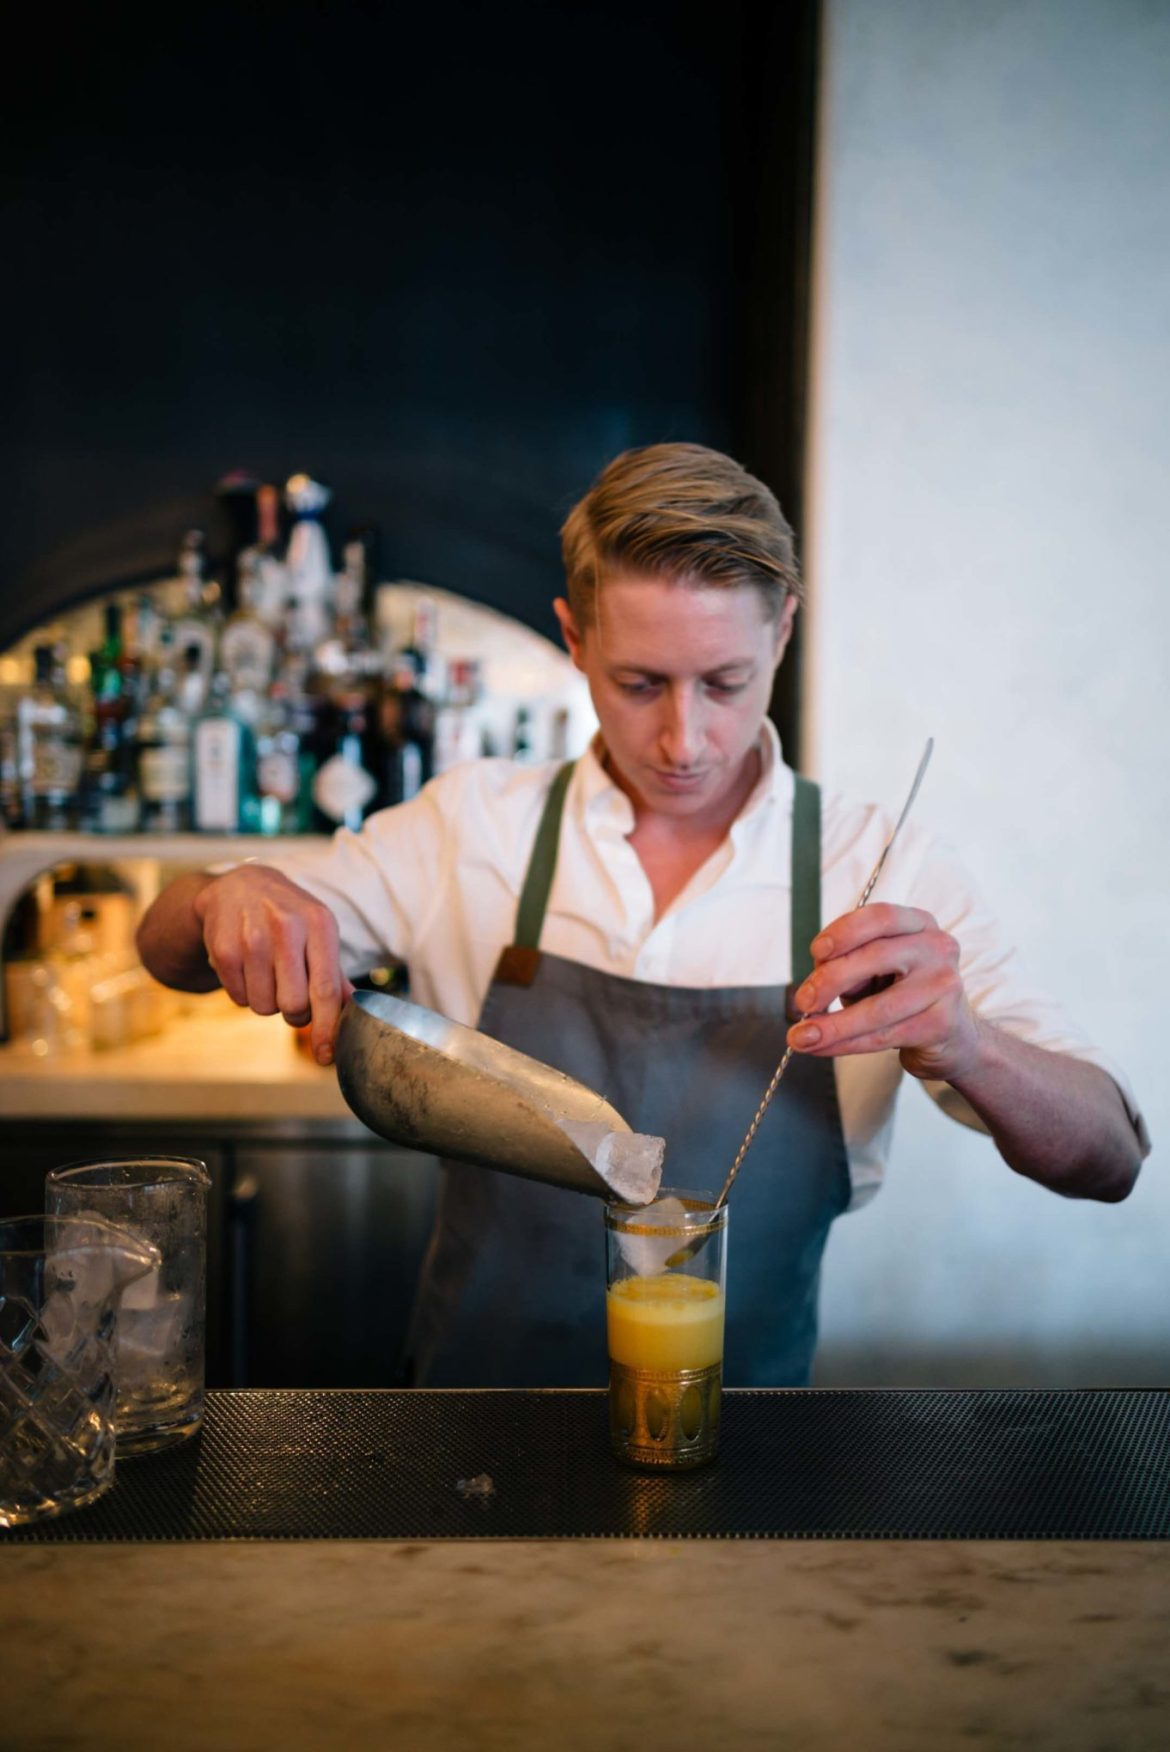 The Taste Edit recommends cocktails at Hollywood Bar, Restaurant, and Butcher shop - Gwenin Los Angeles, owned by Celebrity Chef Curtis Stone.